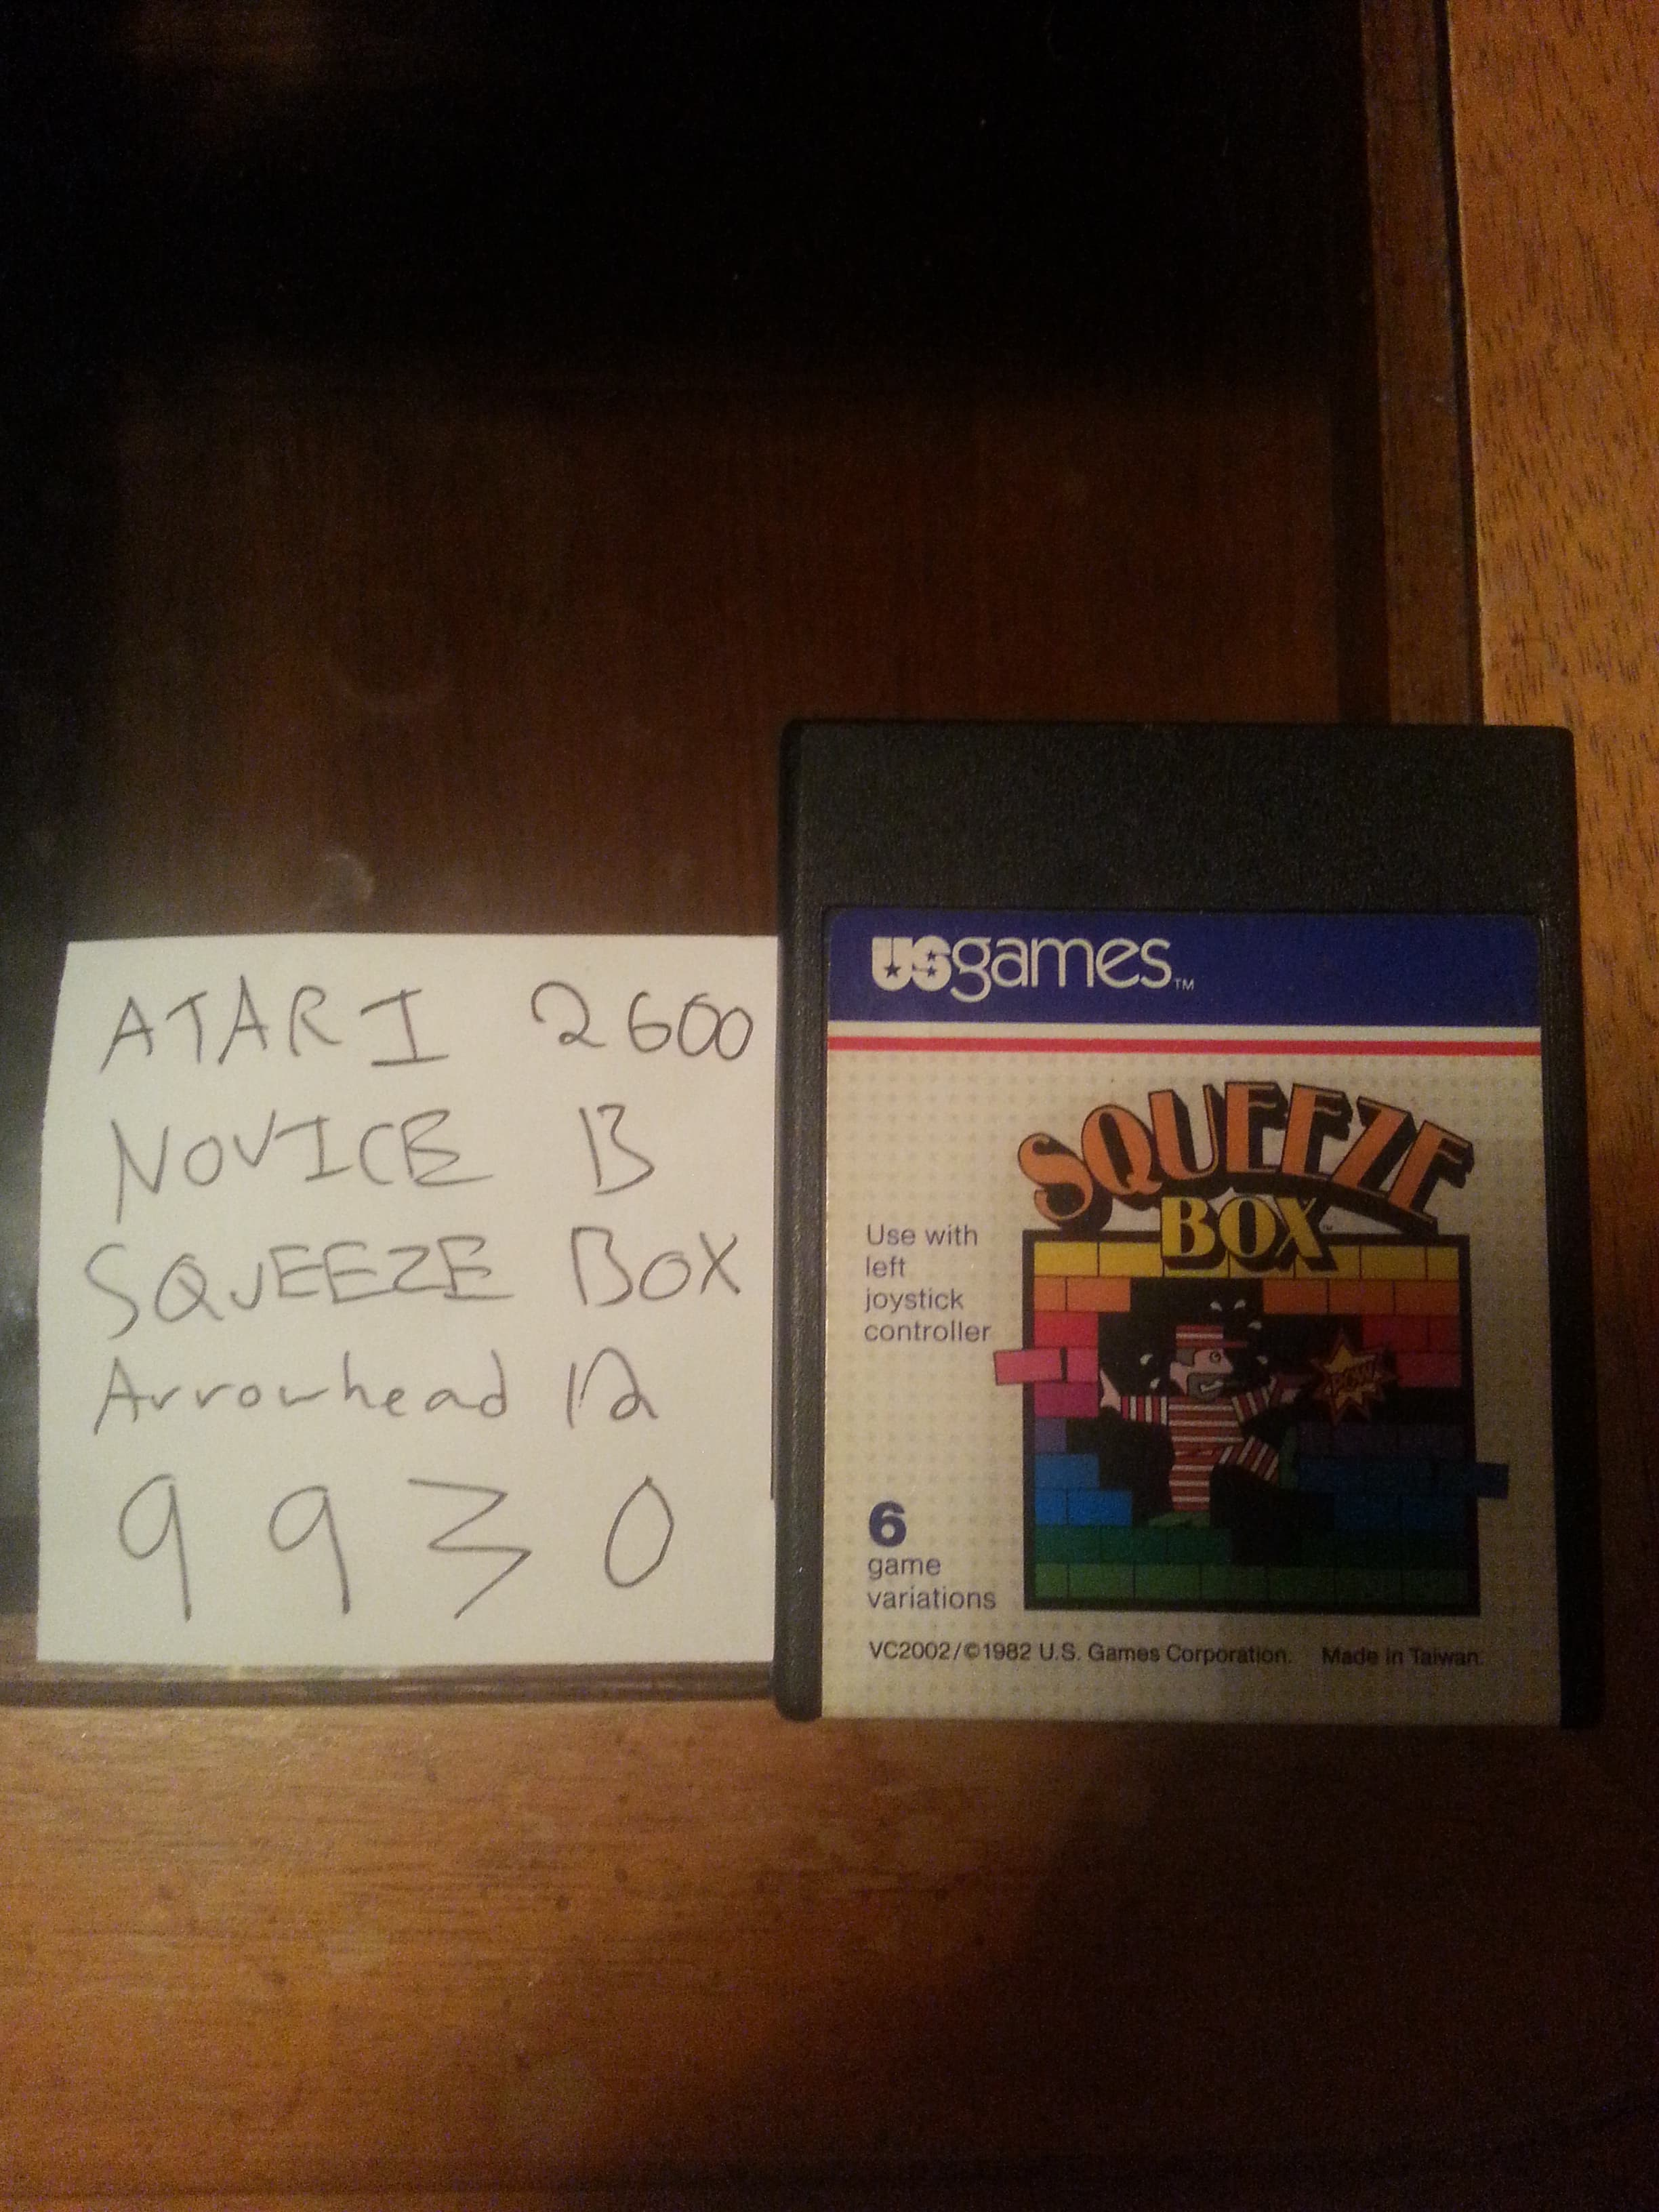 Arrowhead12: Squeeze Box (Atari 2600 Novice/B) 9,930 points on 2018-09-28 02:09:40